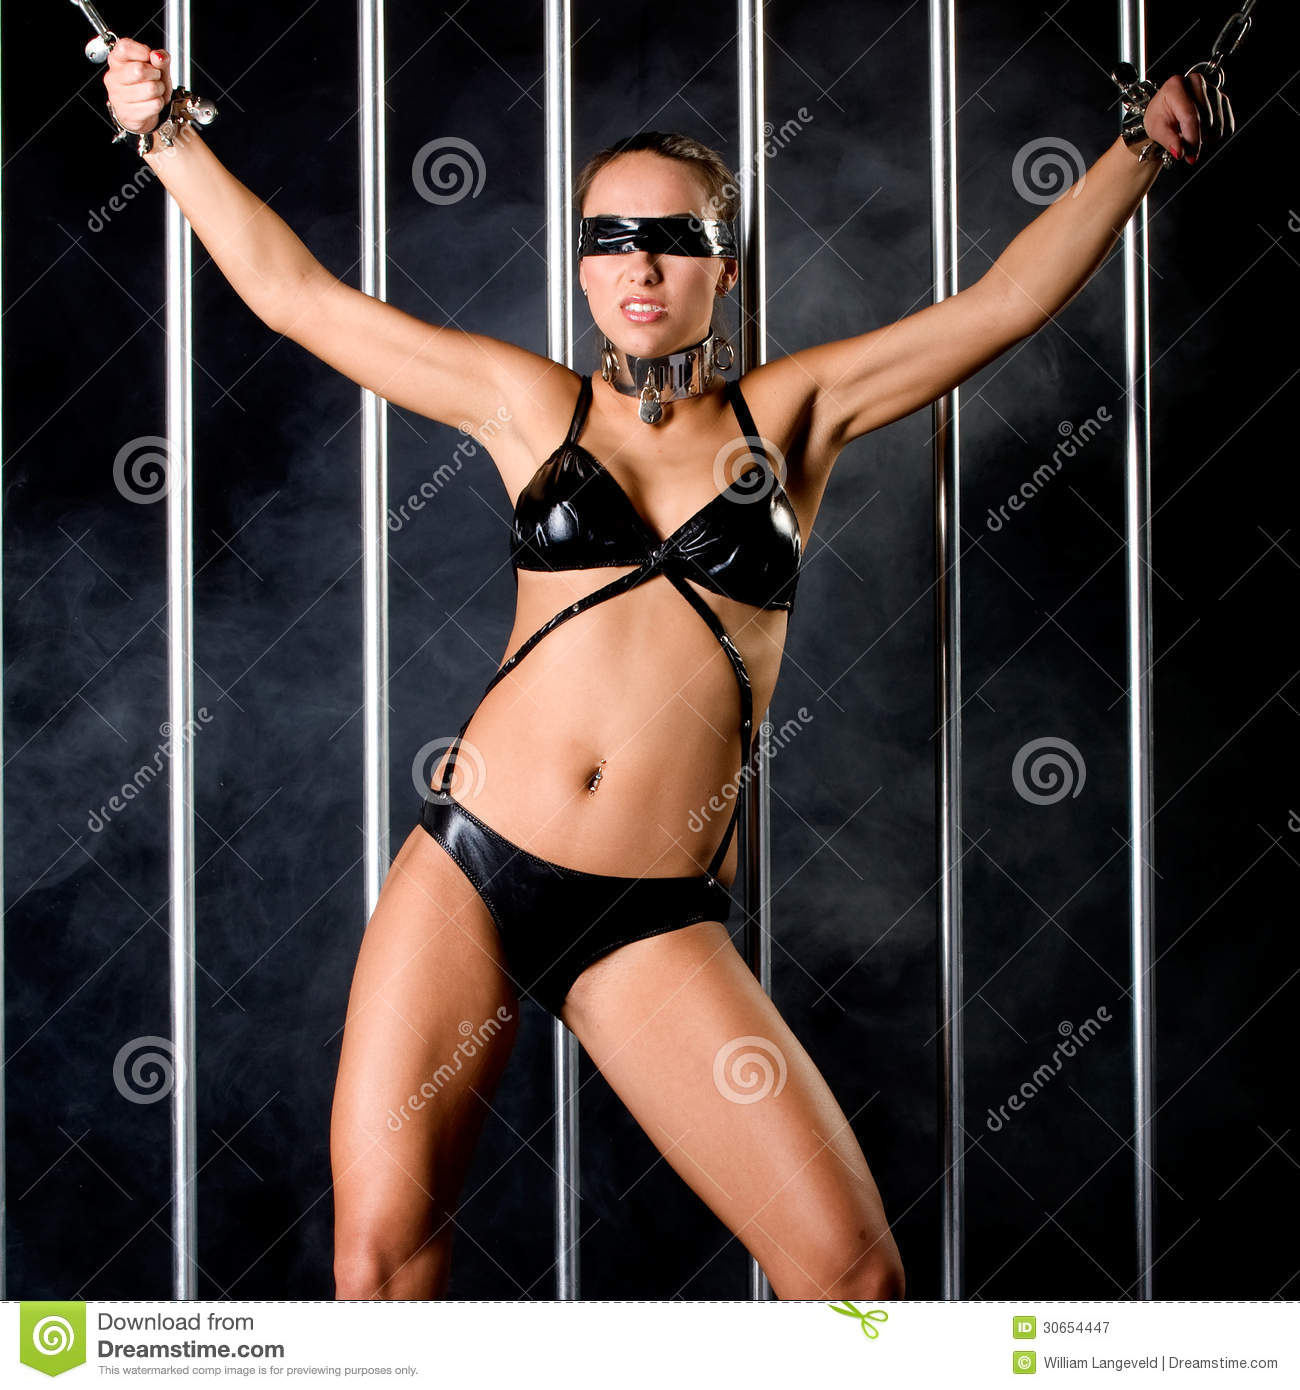 bondage Female erotic